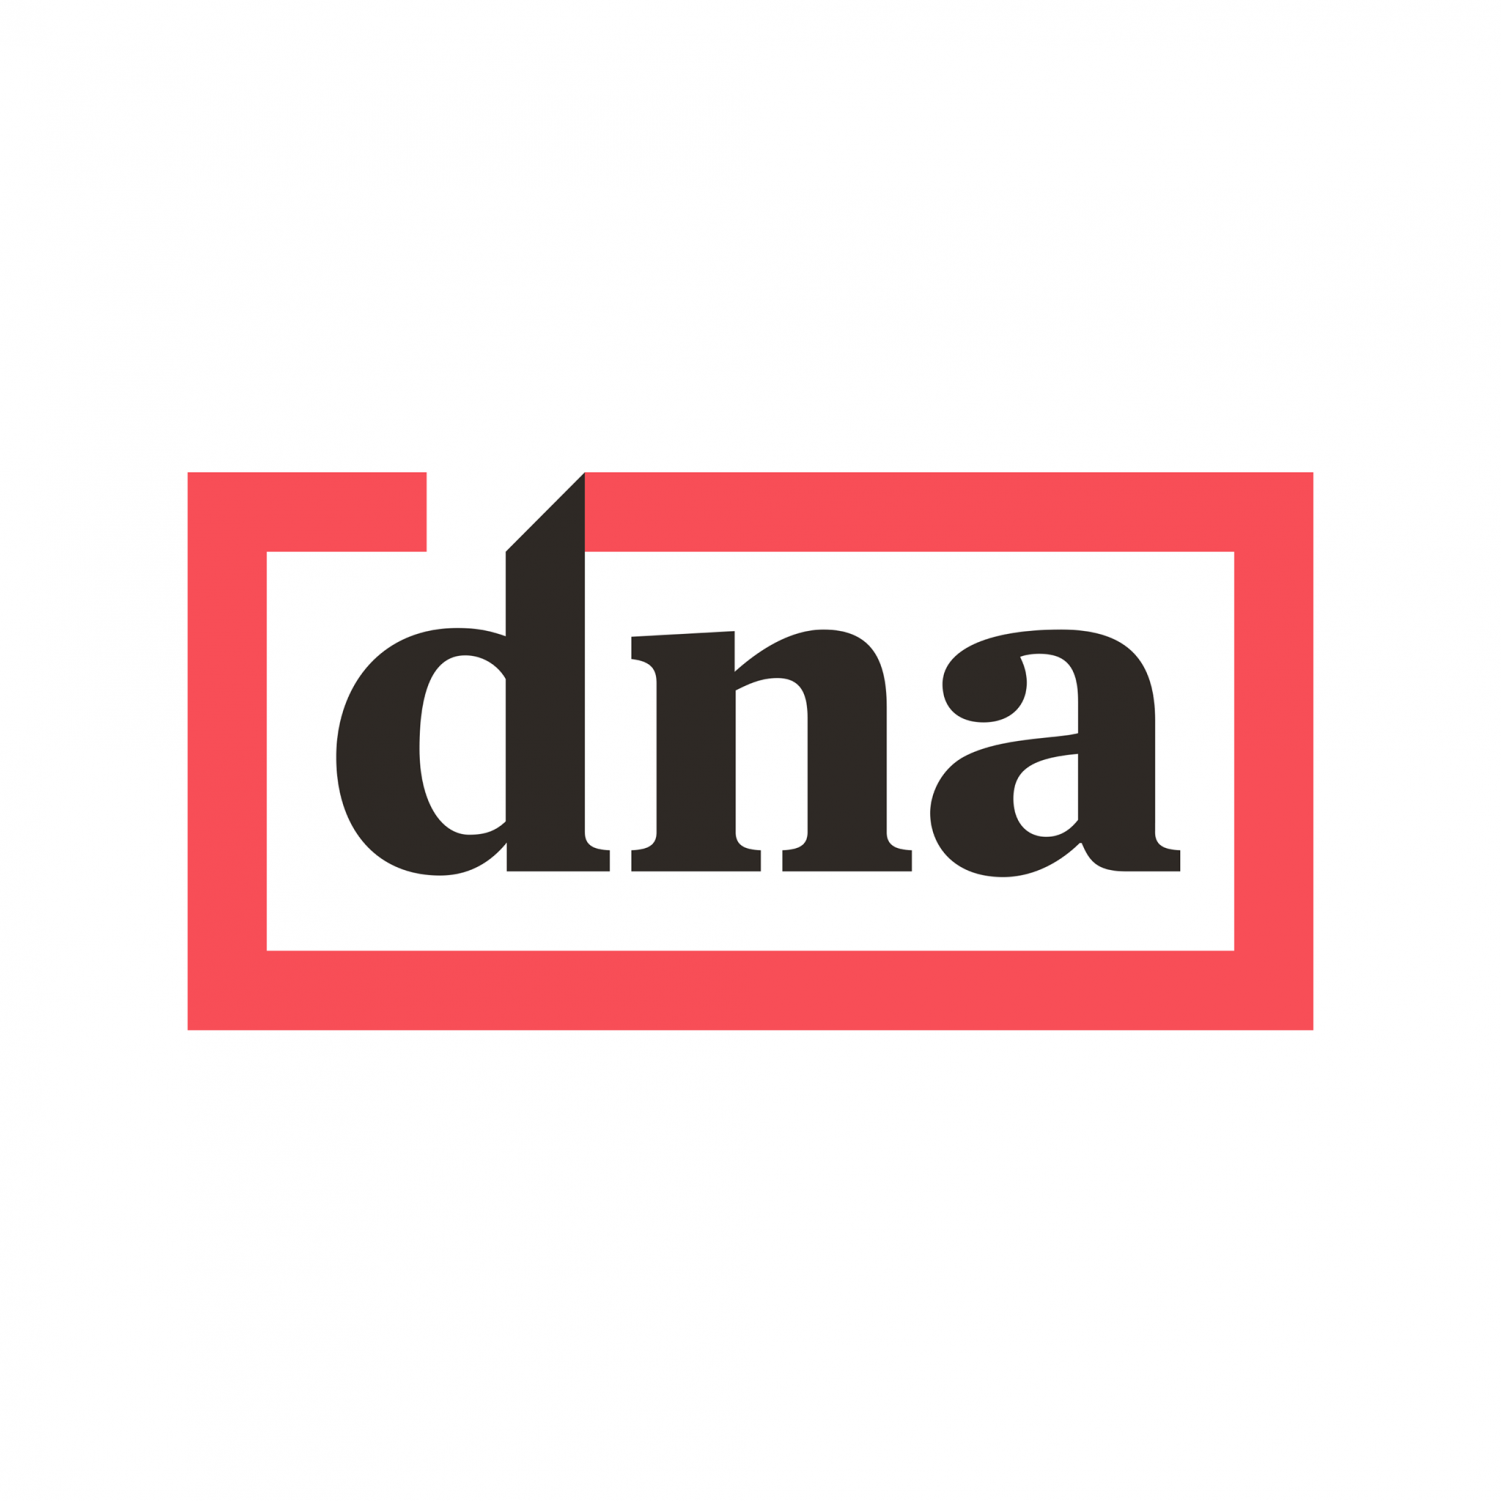 DNAinfo, a local newspaper of New York City, joined forces with Gothamist as they hoped to fight the shutting down of the company.